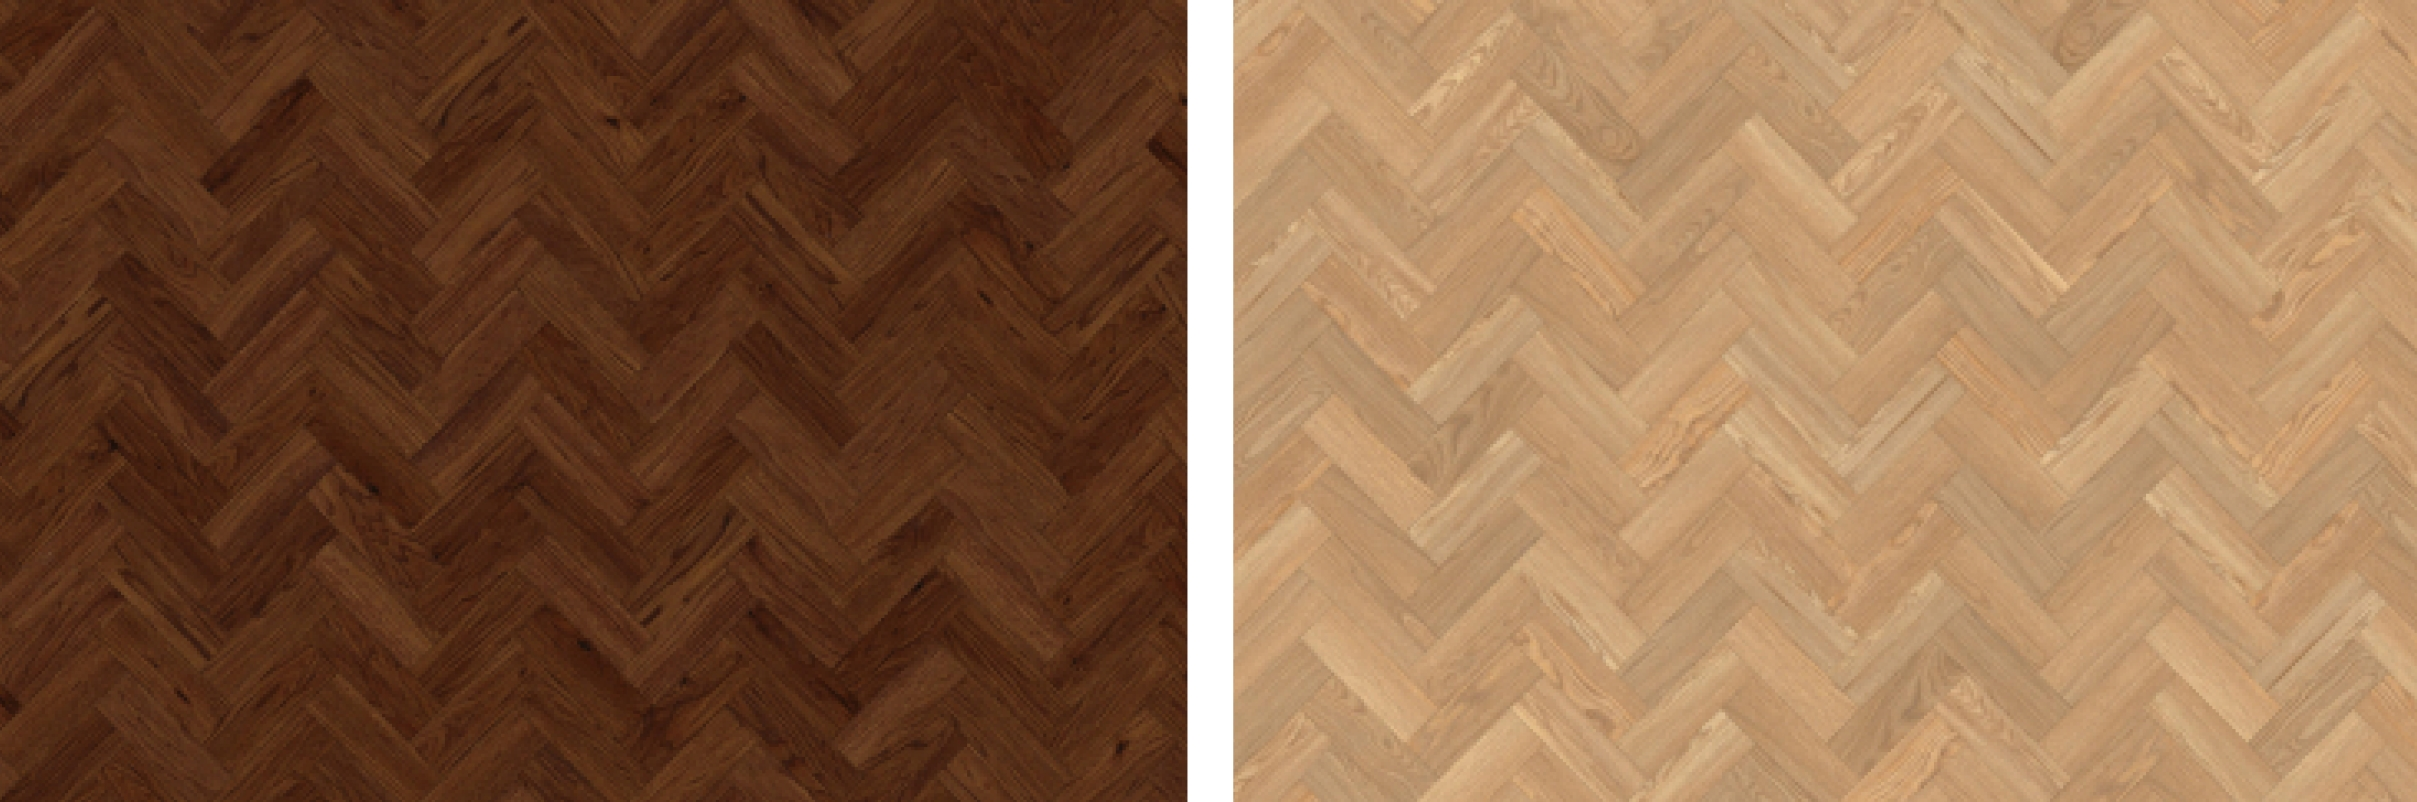 "Small Parquet 3 x 9""/ 76.2 x 228.6mm in Black Walnut (left) and Pale Ash (right)"